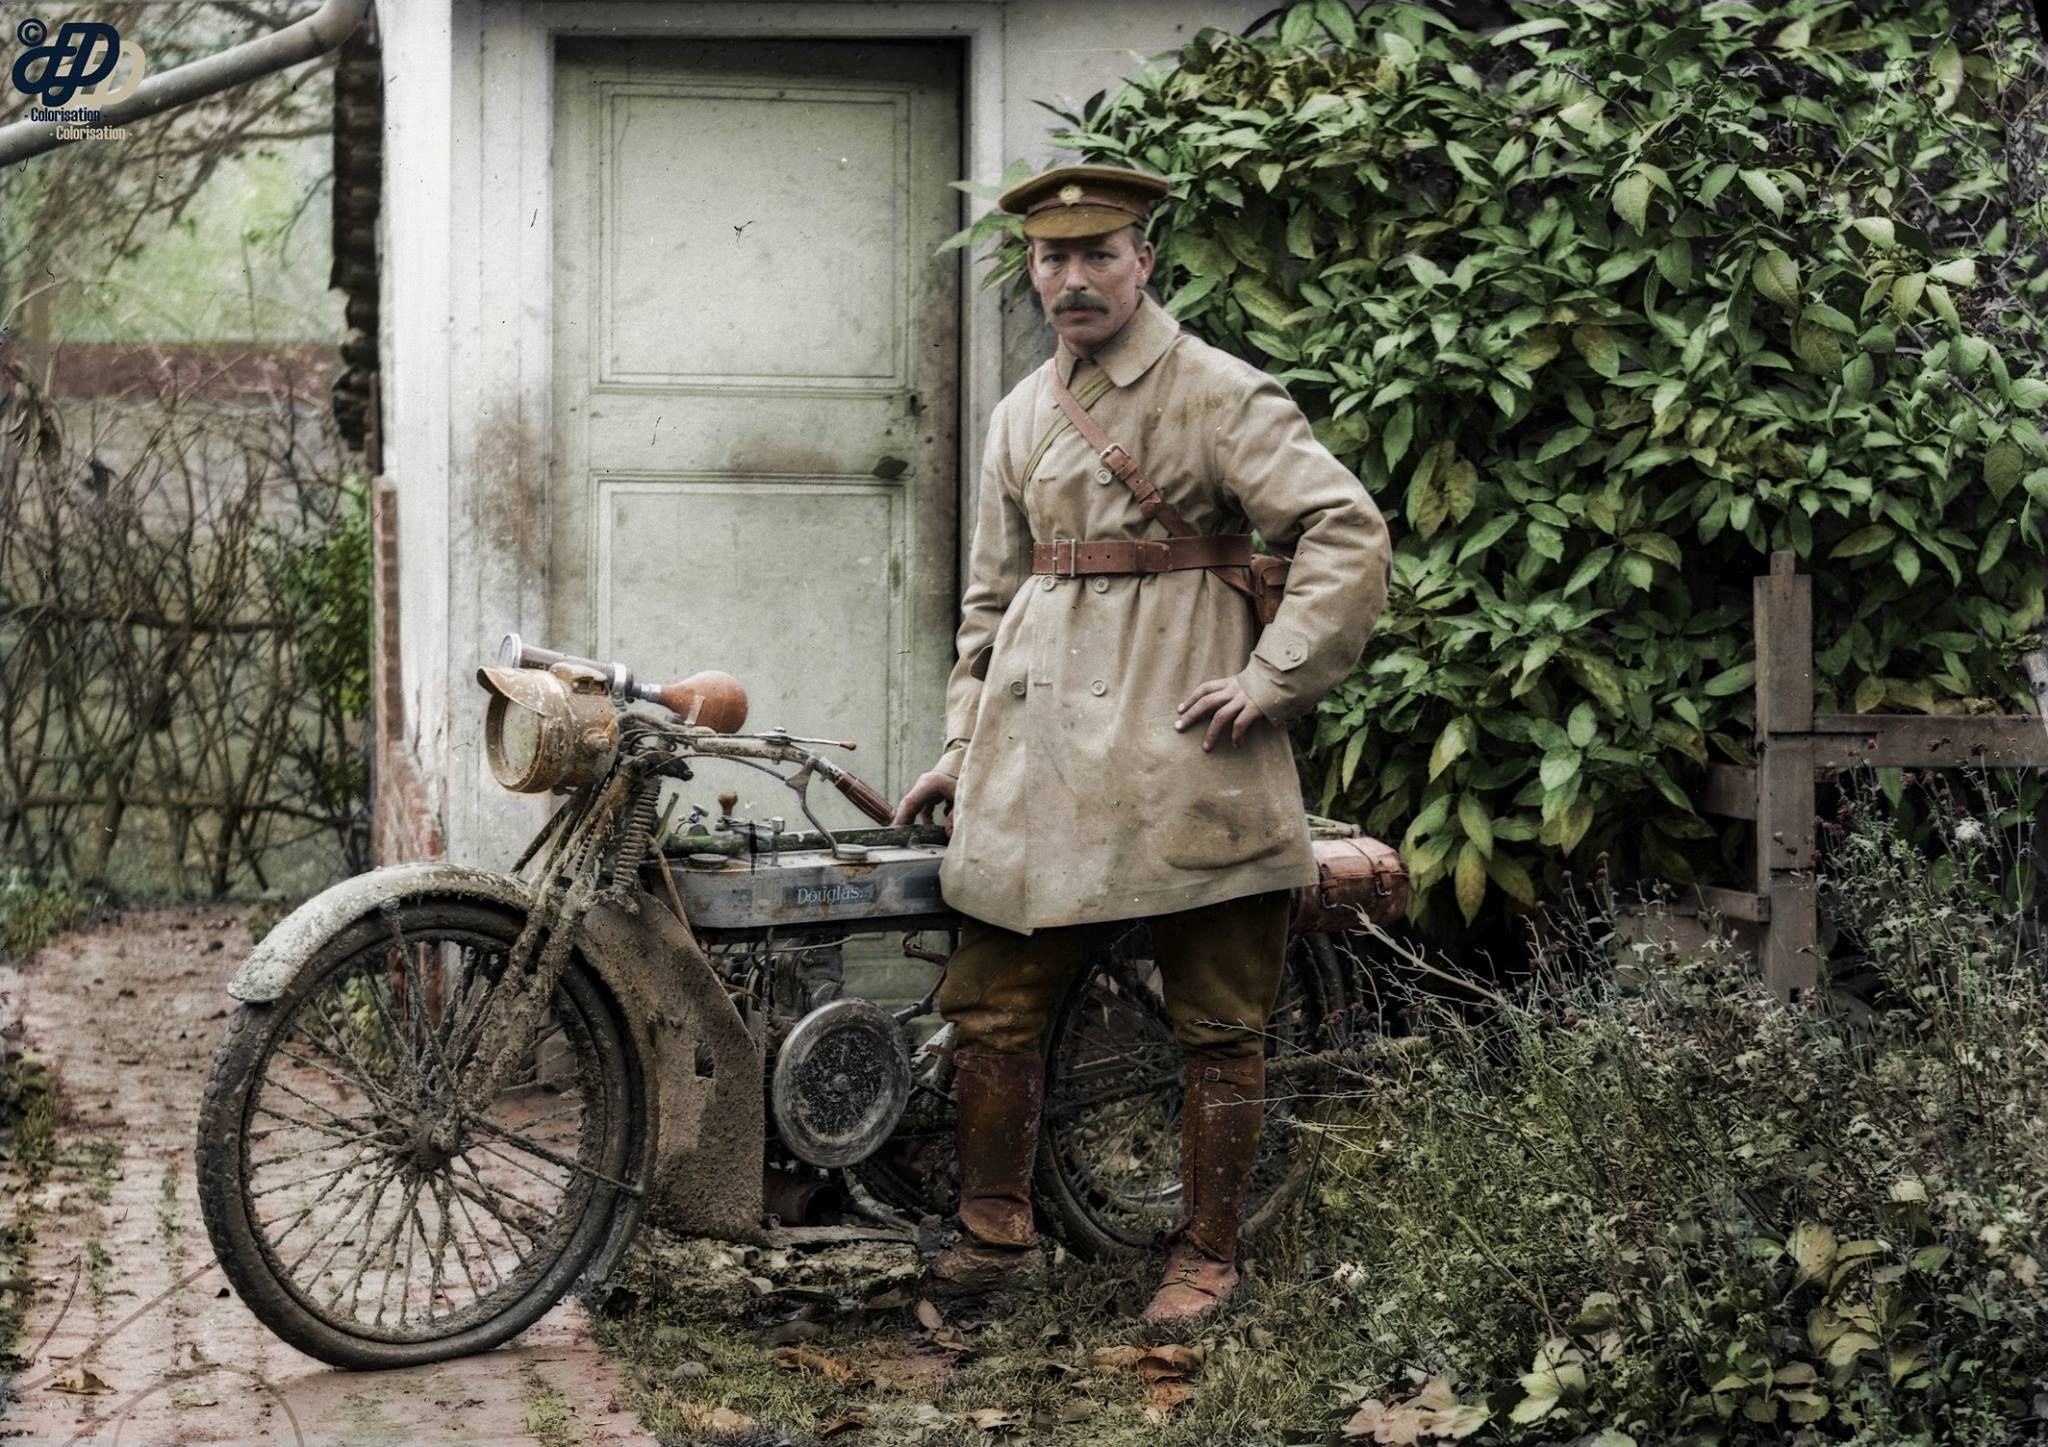 Army Service Corps Despatch Rider With His 1914 Douglas Motorcycle In A Photographers Garden In Warloy Baillon S Classic Motorcycles Riders Bike Vintage Bikes